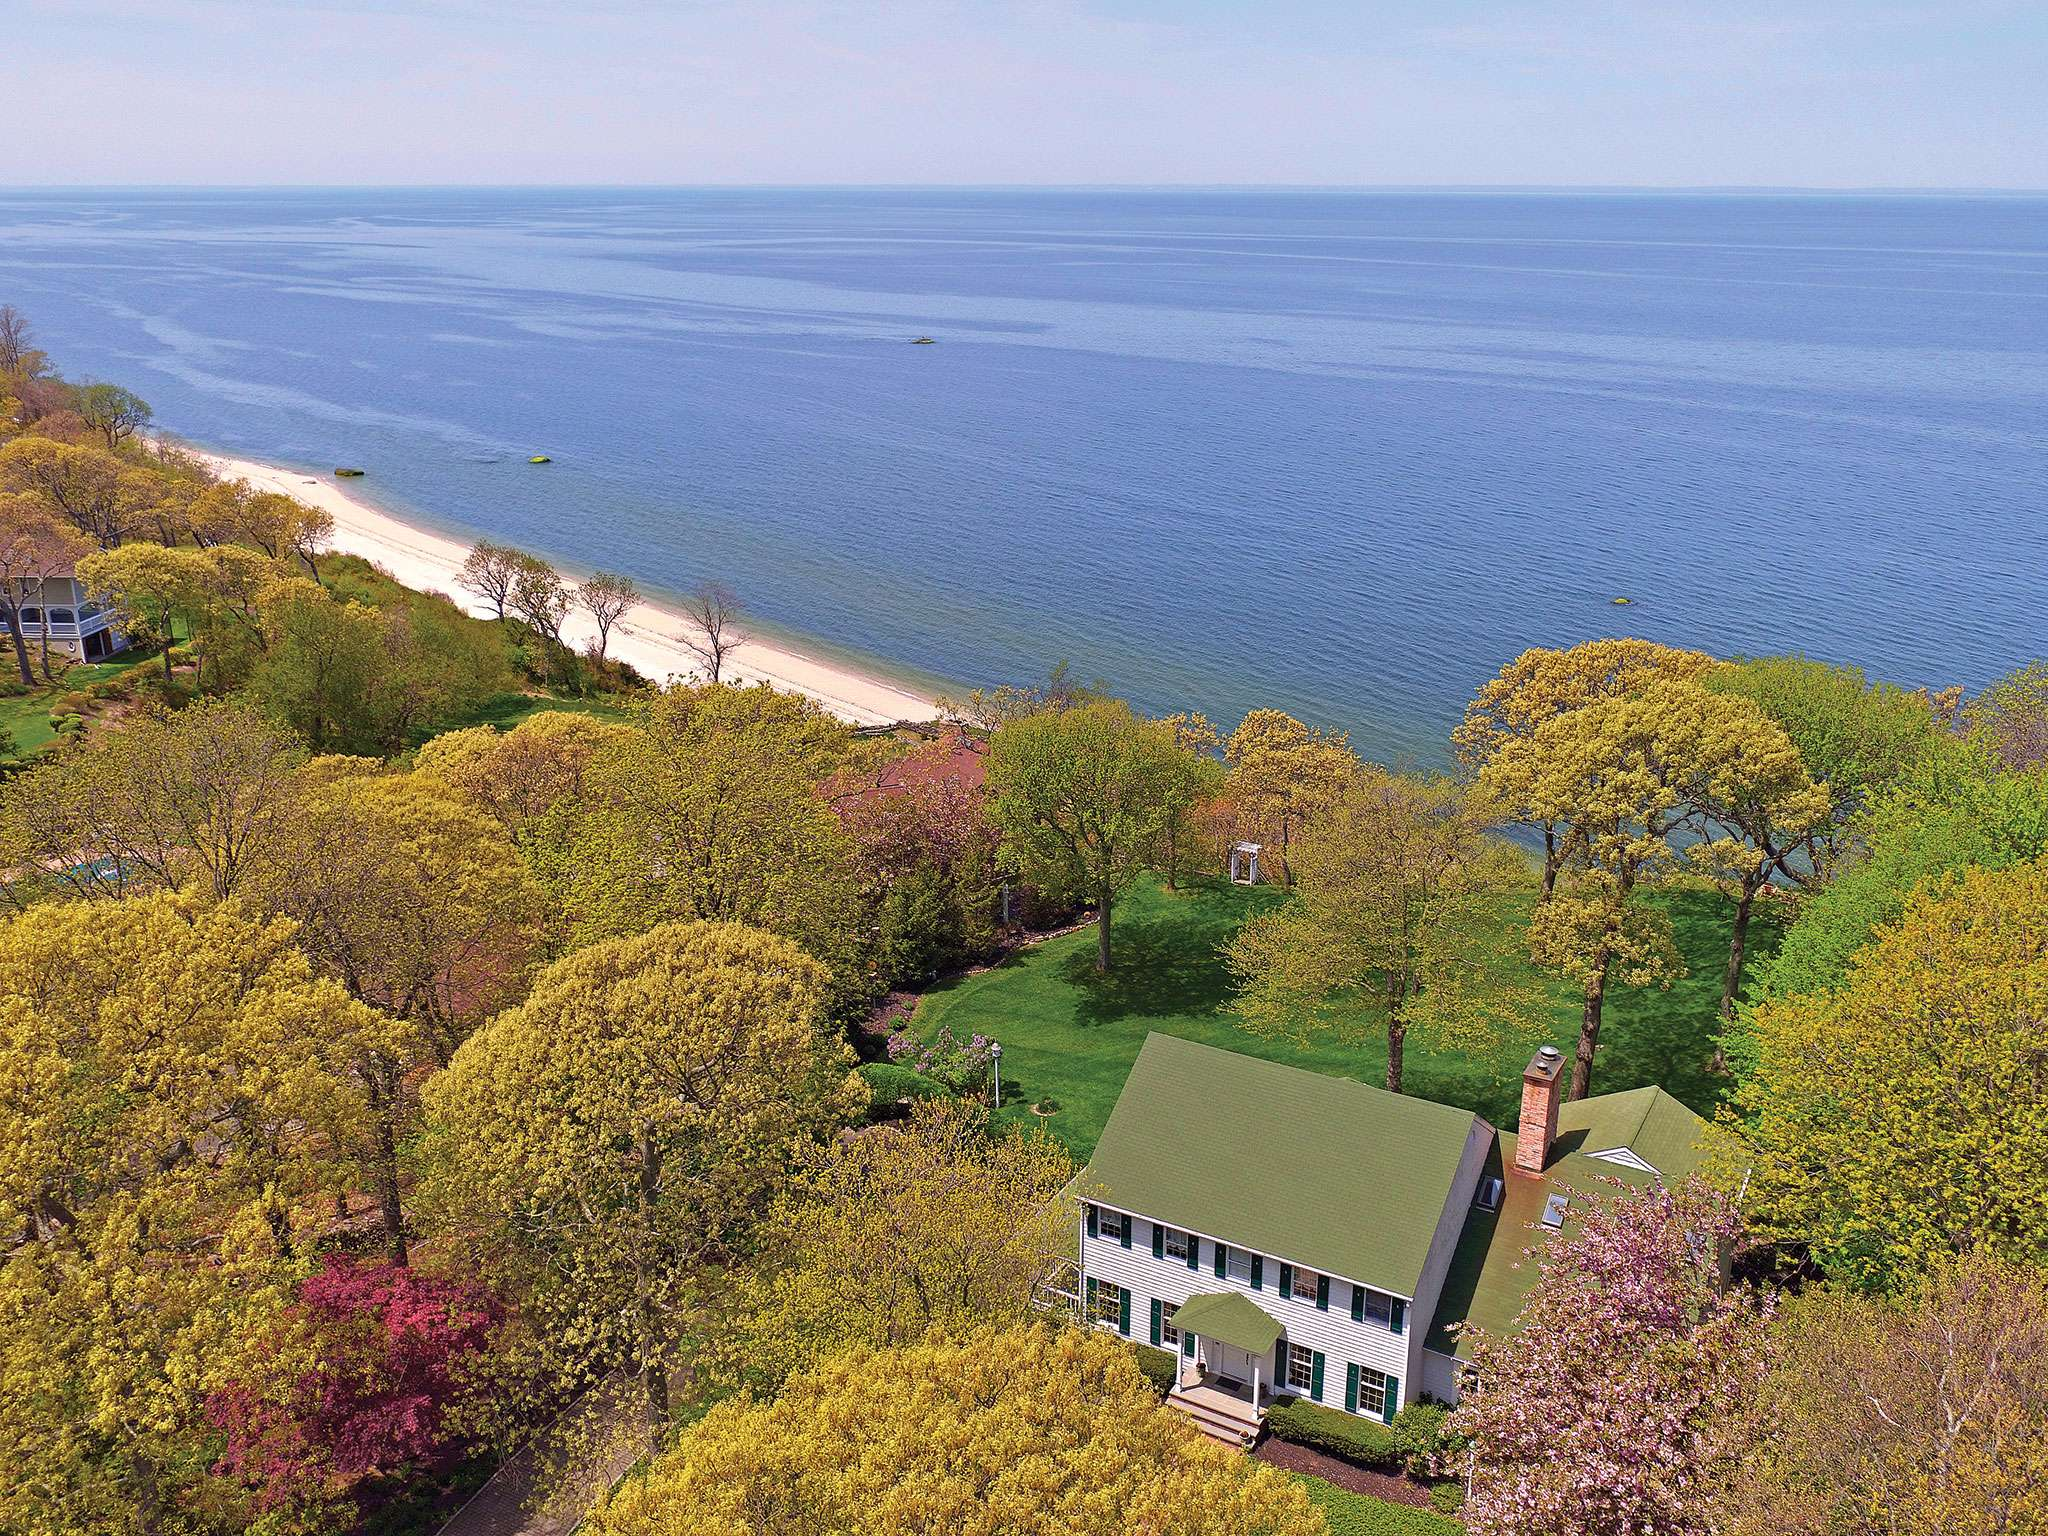 Single Family Home for Sale at Majestic Property Overlooking Long Island Sound 35 Soundview Drive, Shoreham, New York